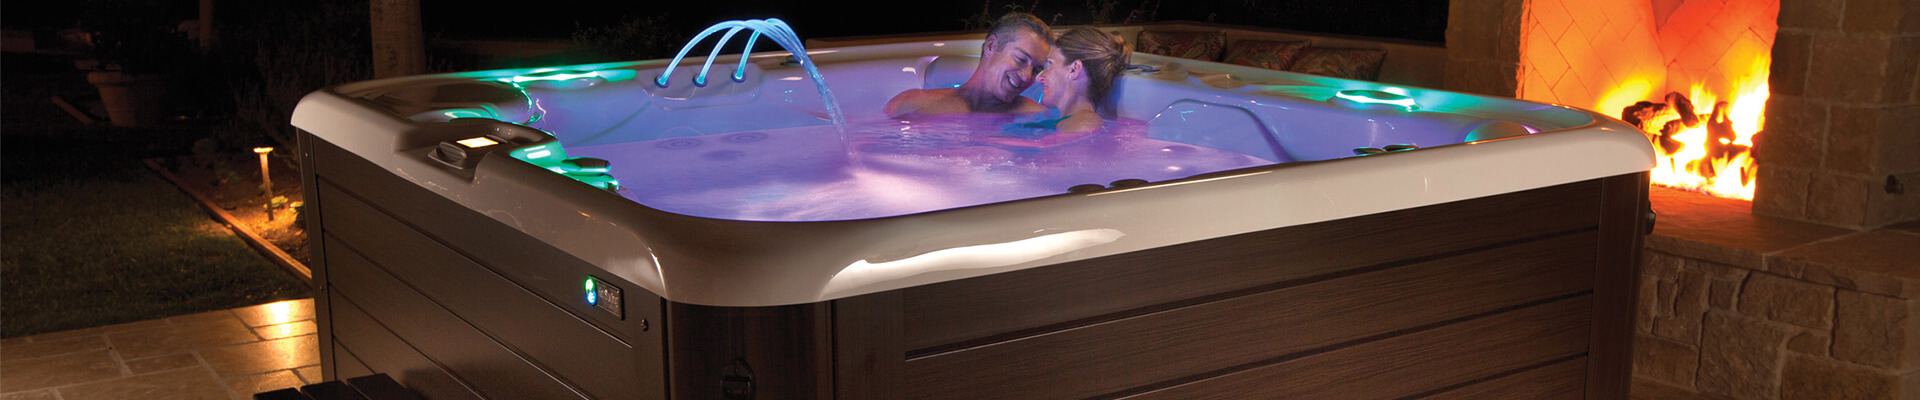 Making New Year's Resolutions Easier with a Backyard Spa, Hot Tub Prices Minneapolis